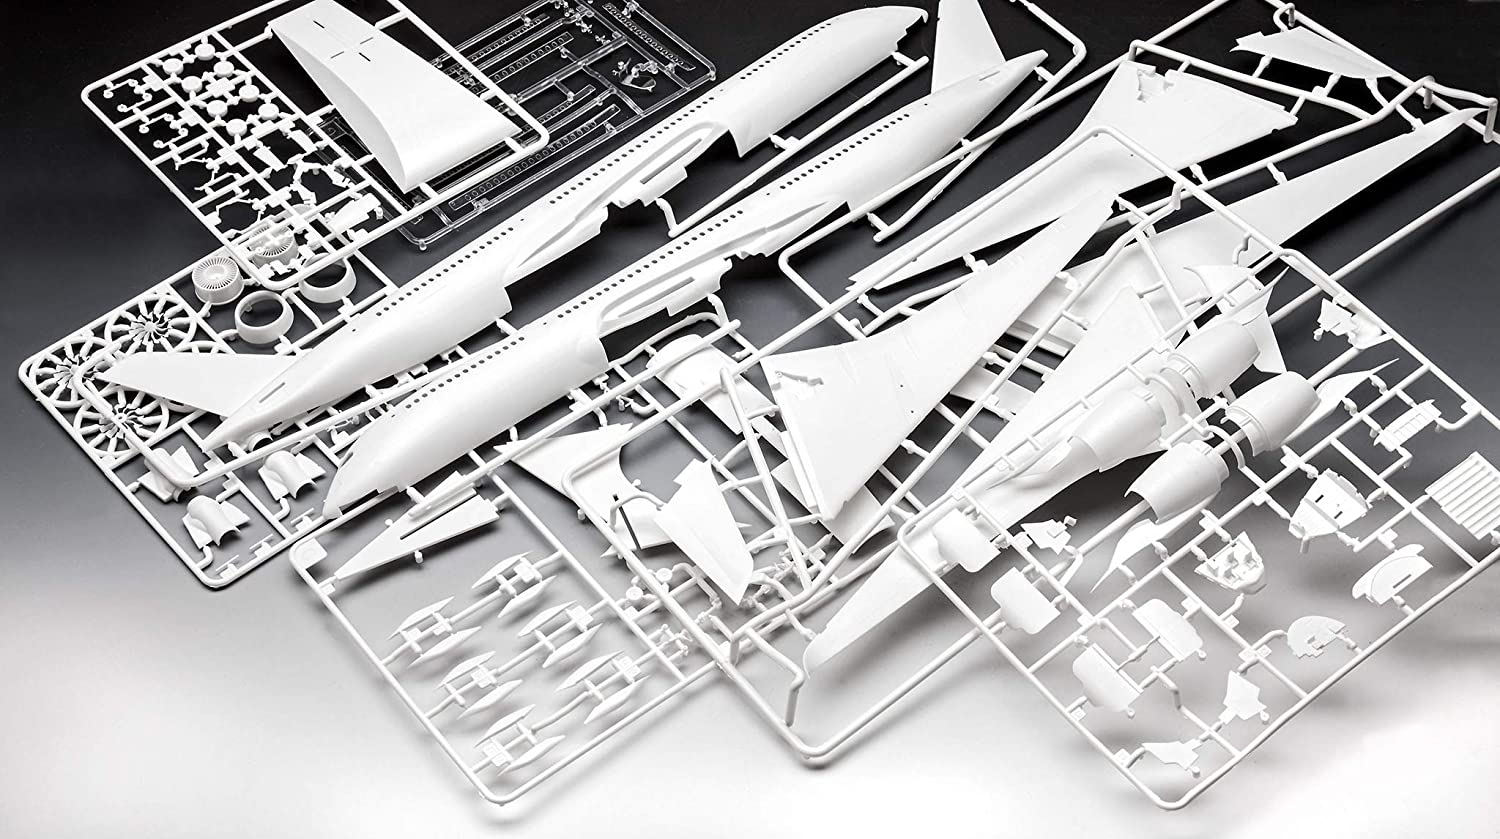 Revell 03881 1:144 Airbus A350-900 Lufthansa New Livery Plastic Model Kit